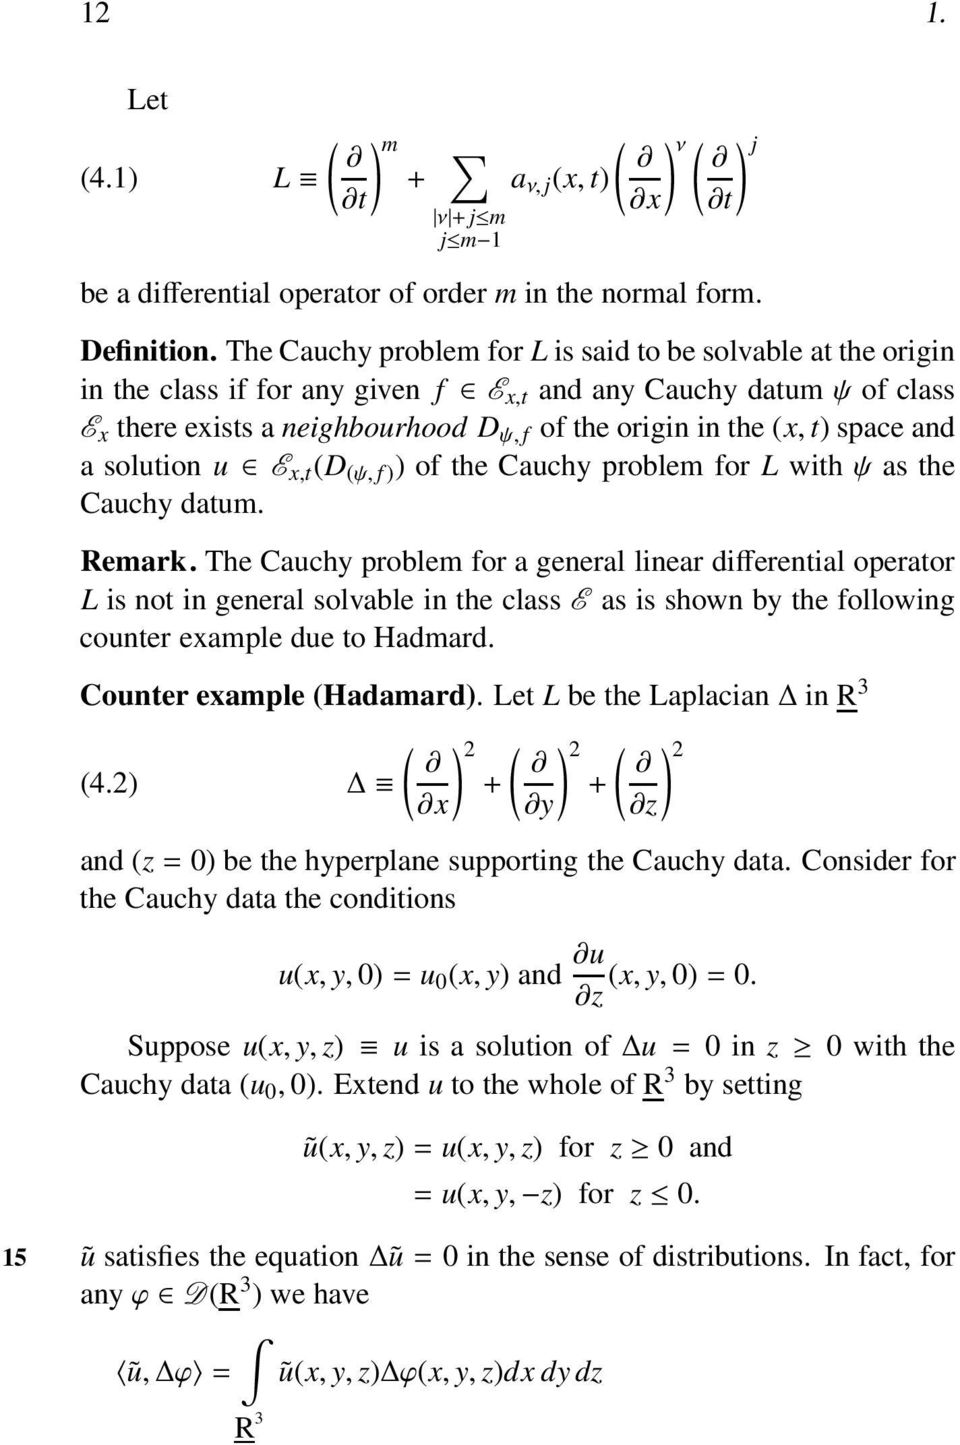 space and a solution u E x,t (D (ψ, f ) ) of the Cauchy problem for L withψas the Cauchy datum. Remark.